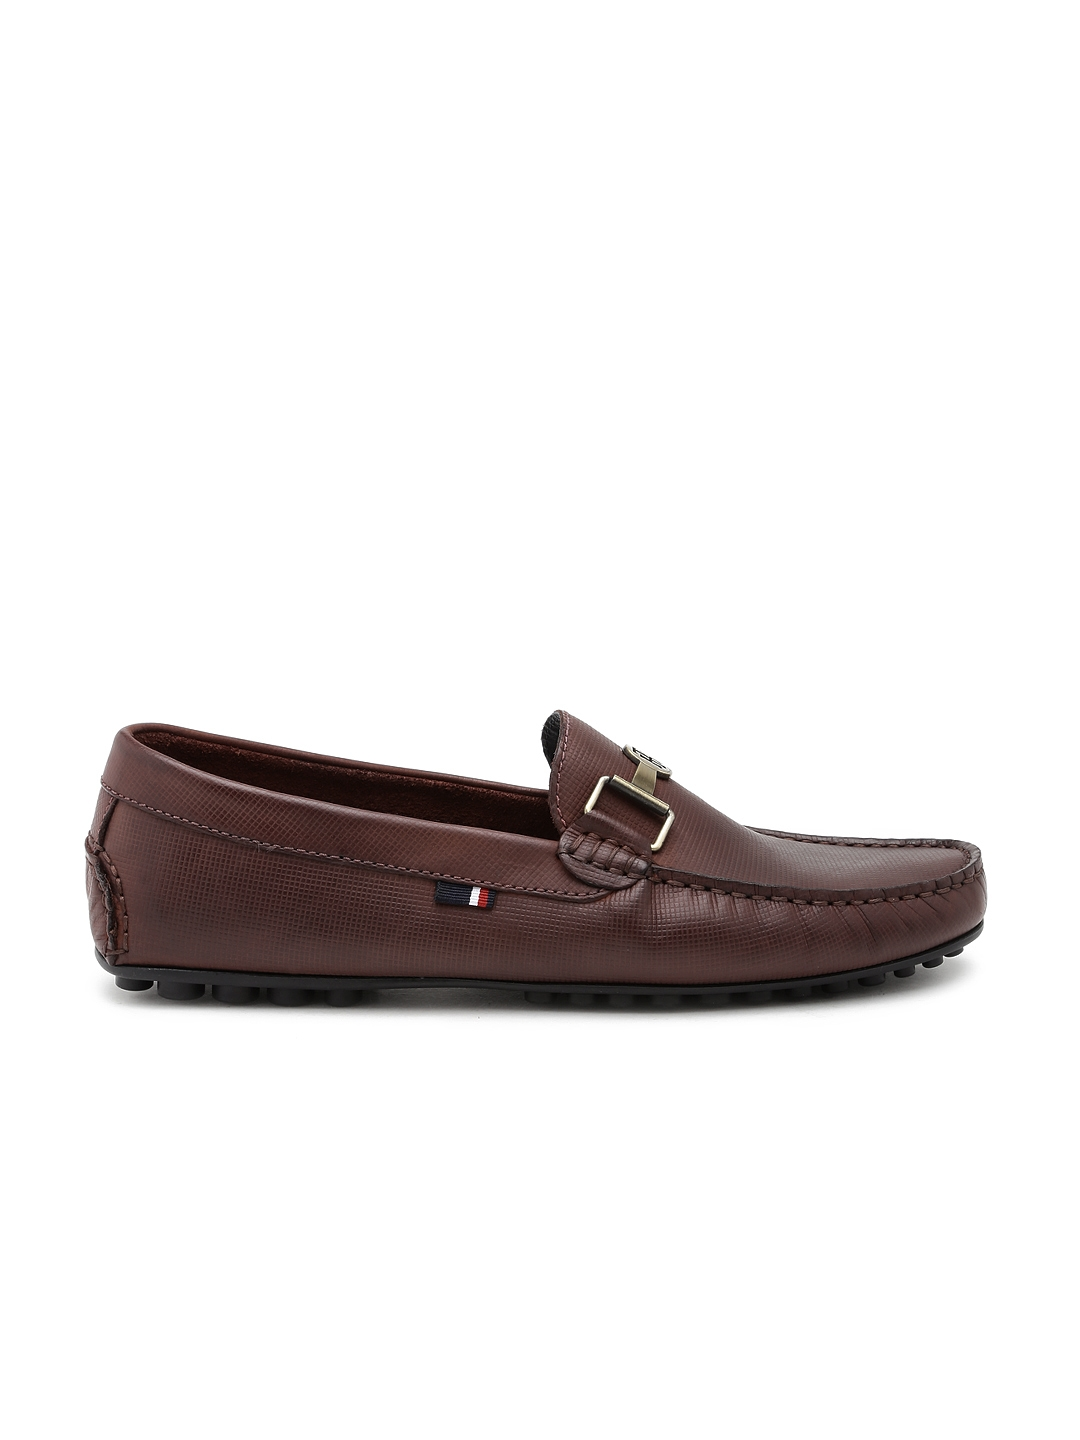 67ed794640a5 Tommy Hilfiger Men Brown Leather Loafers. This product is already at its best  price